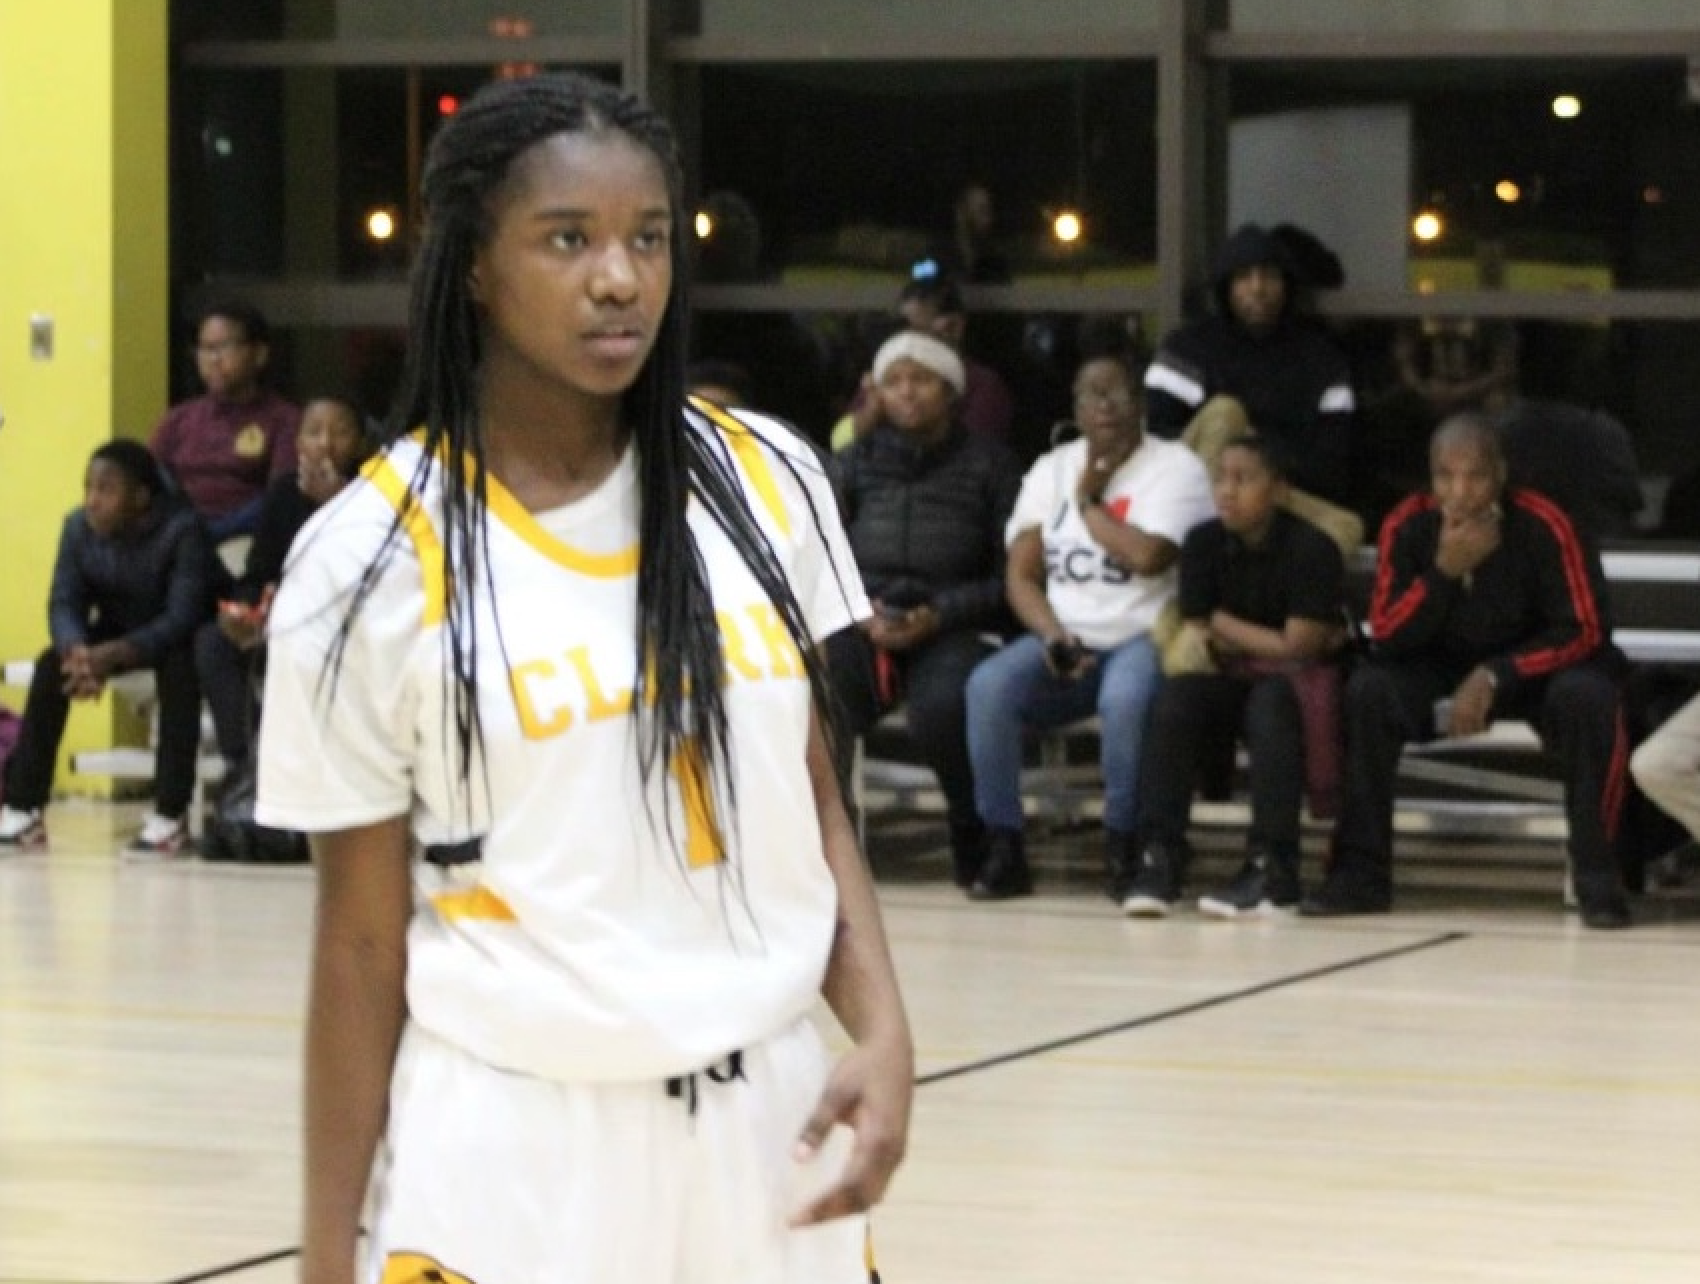 Kierra Moore, who played for the girls' basketball team at Michele Clark Academic Prep Magnet High School, was shot and killed Thursday in Chicago.